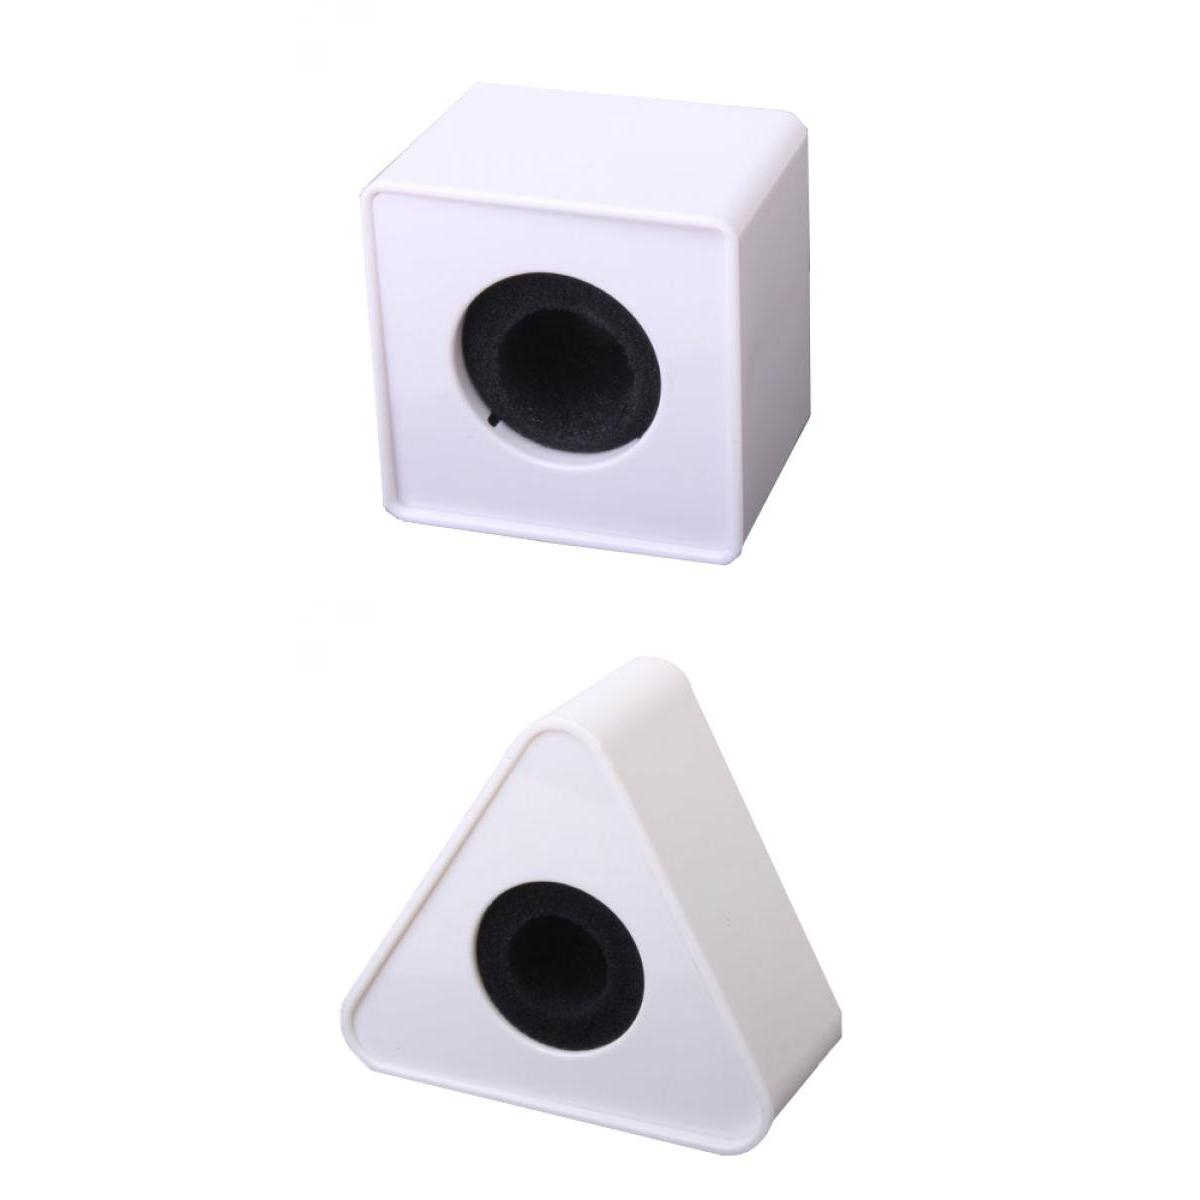 2Pcs 39mm Hole TV Microphone Interview Triangular+ Square  Flag Station